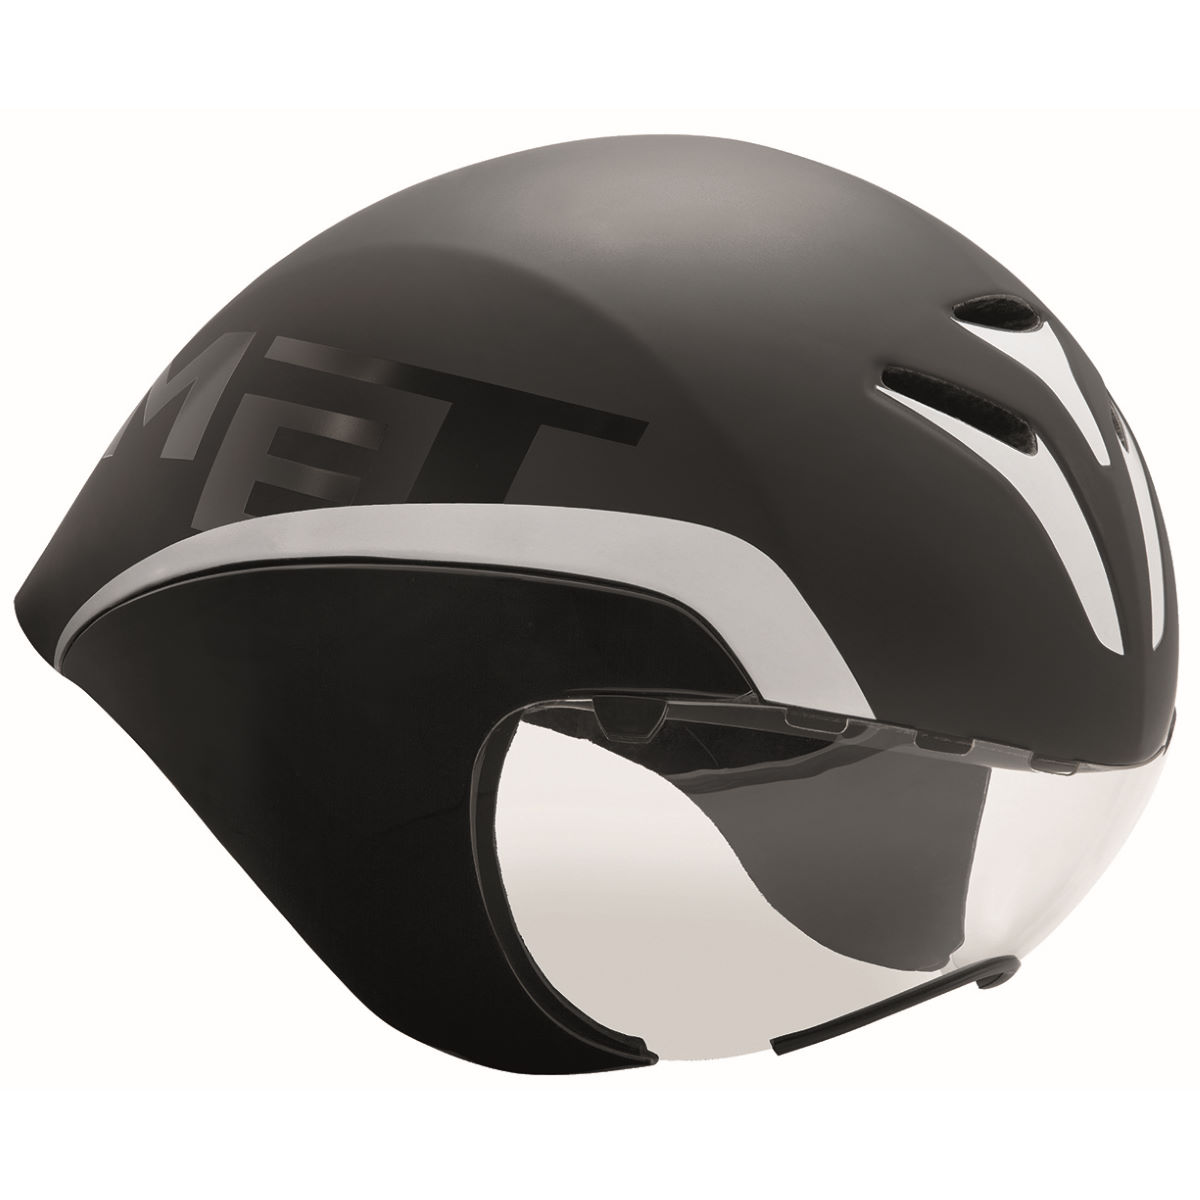 Casco MET Drone Widebody - Cascos de carretera